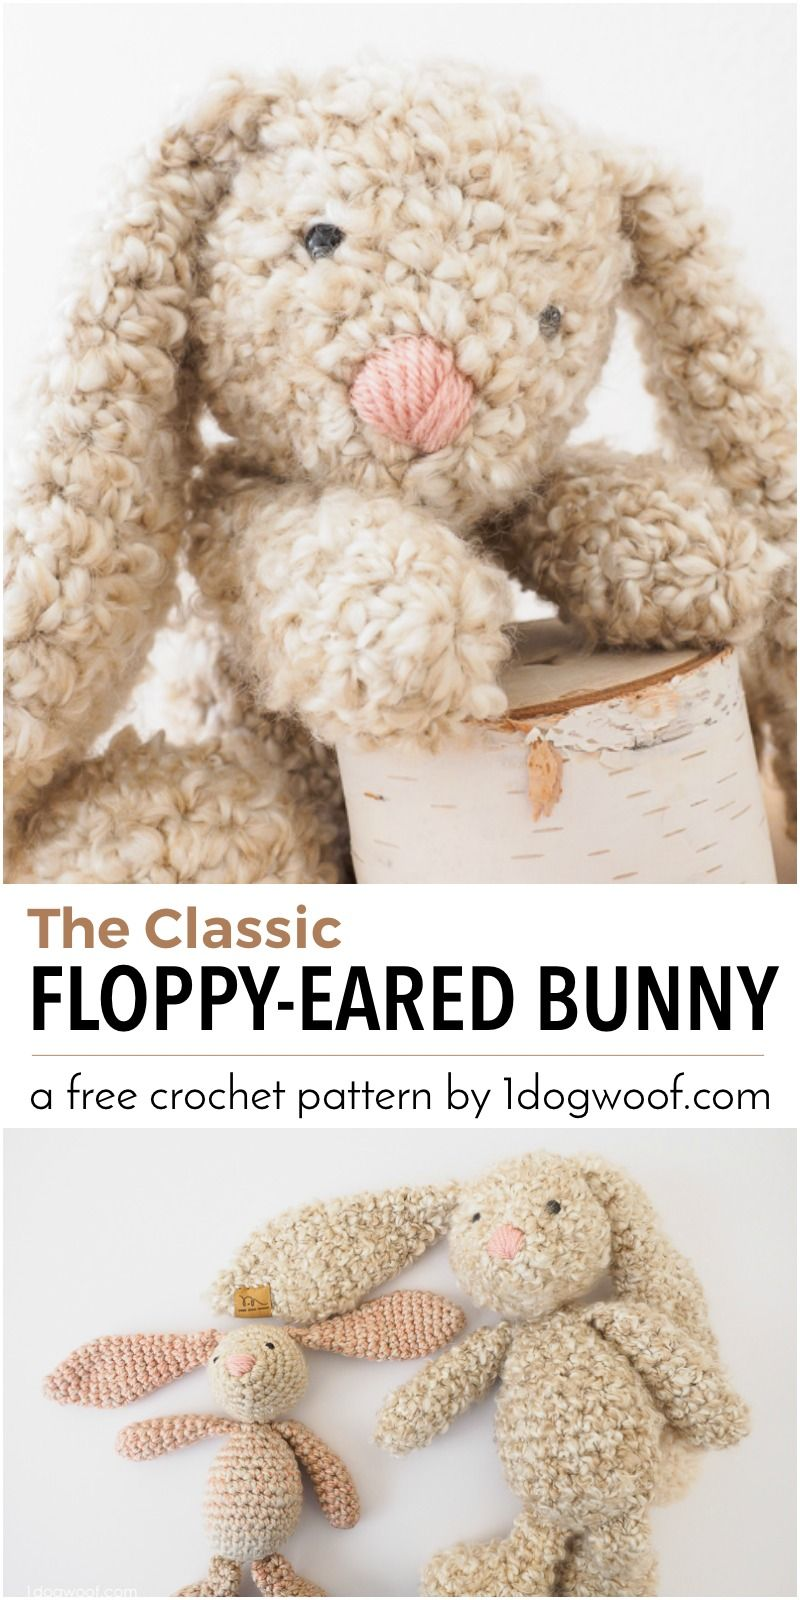 Classic Stuffed Bunny Crochet Pattern for Easter | Orejas de conejo ...